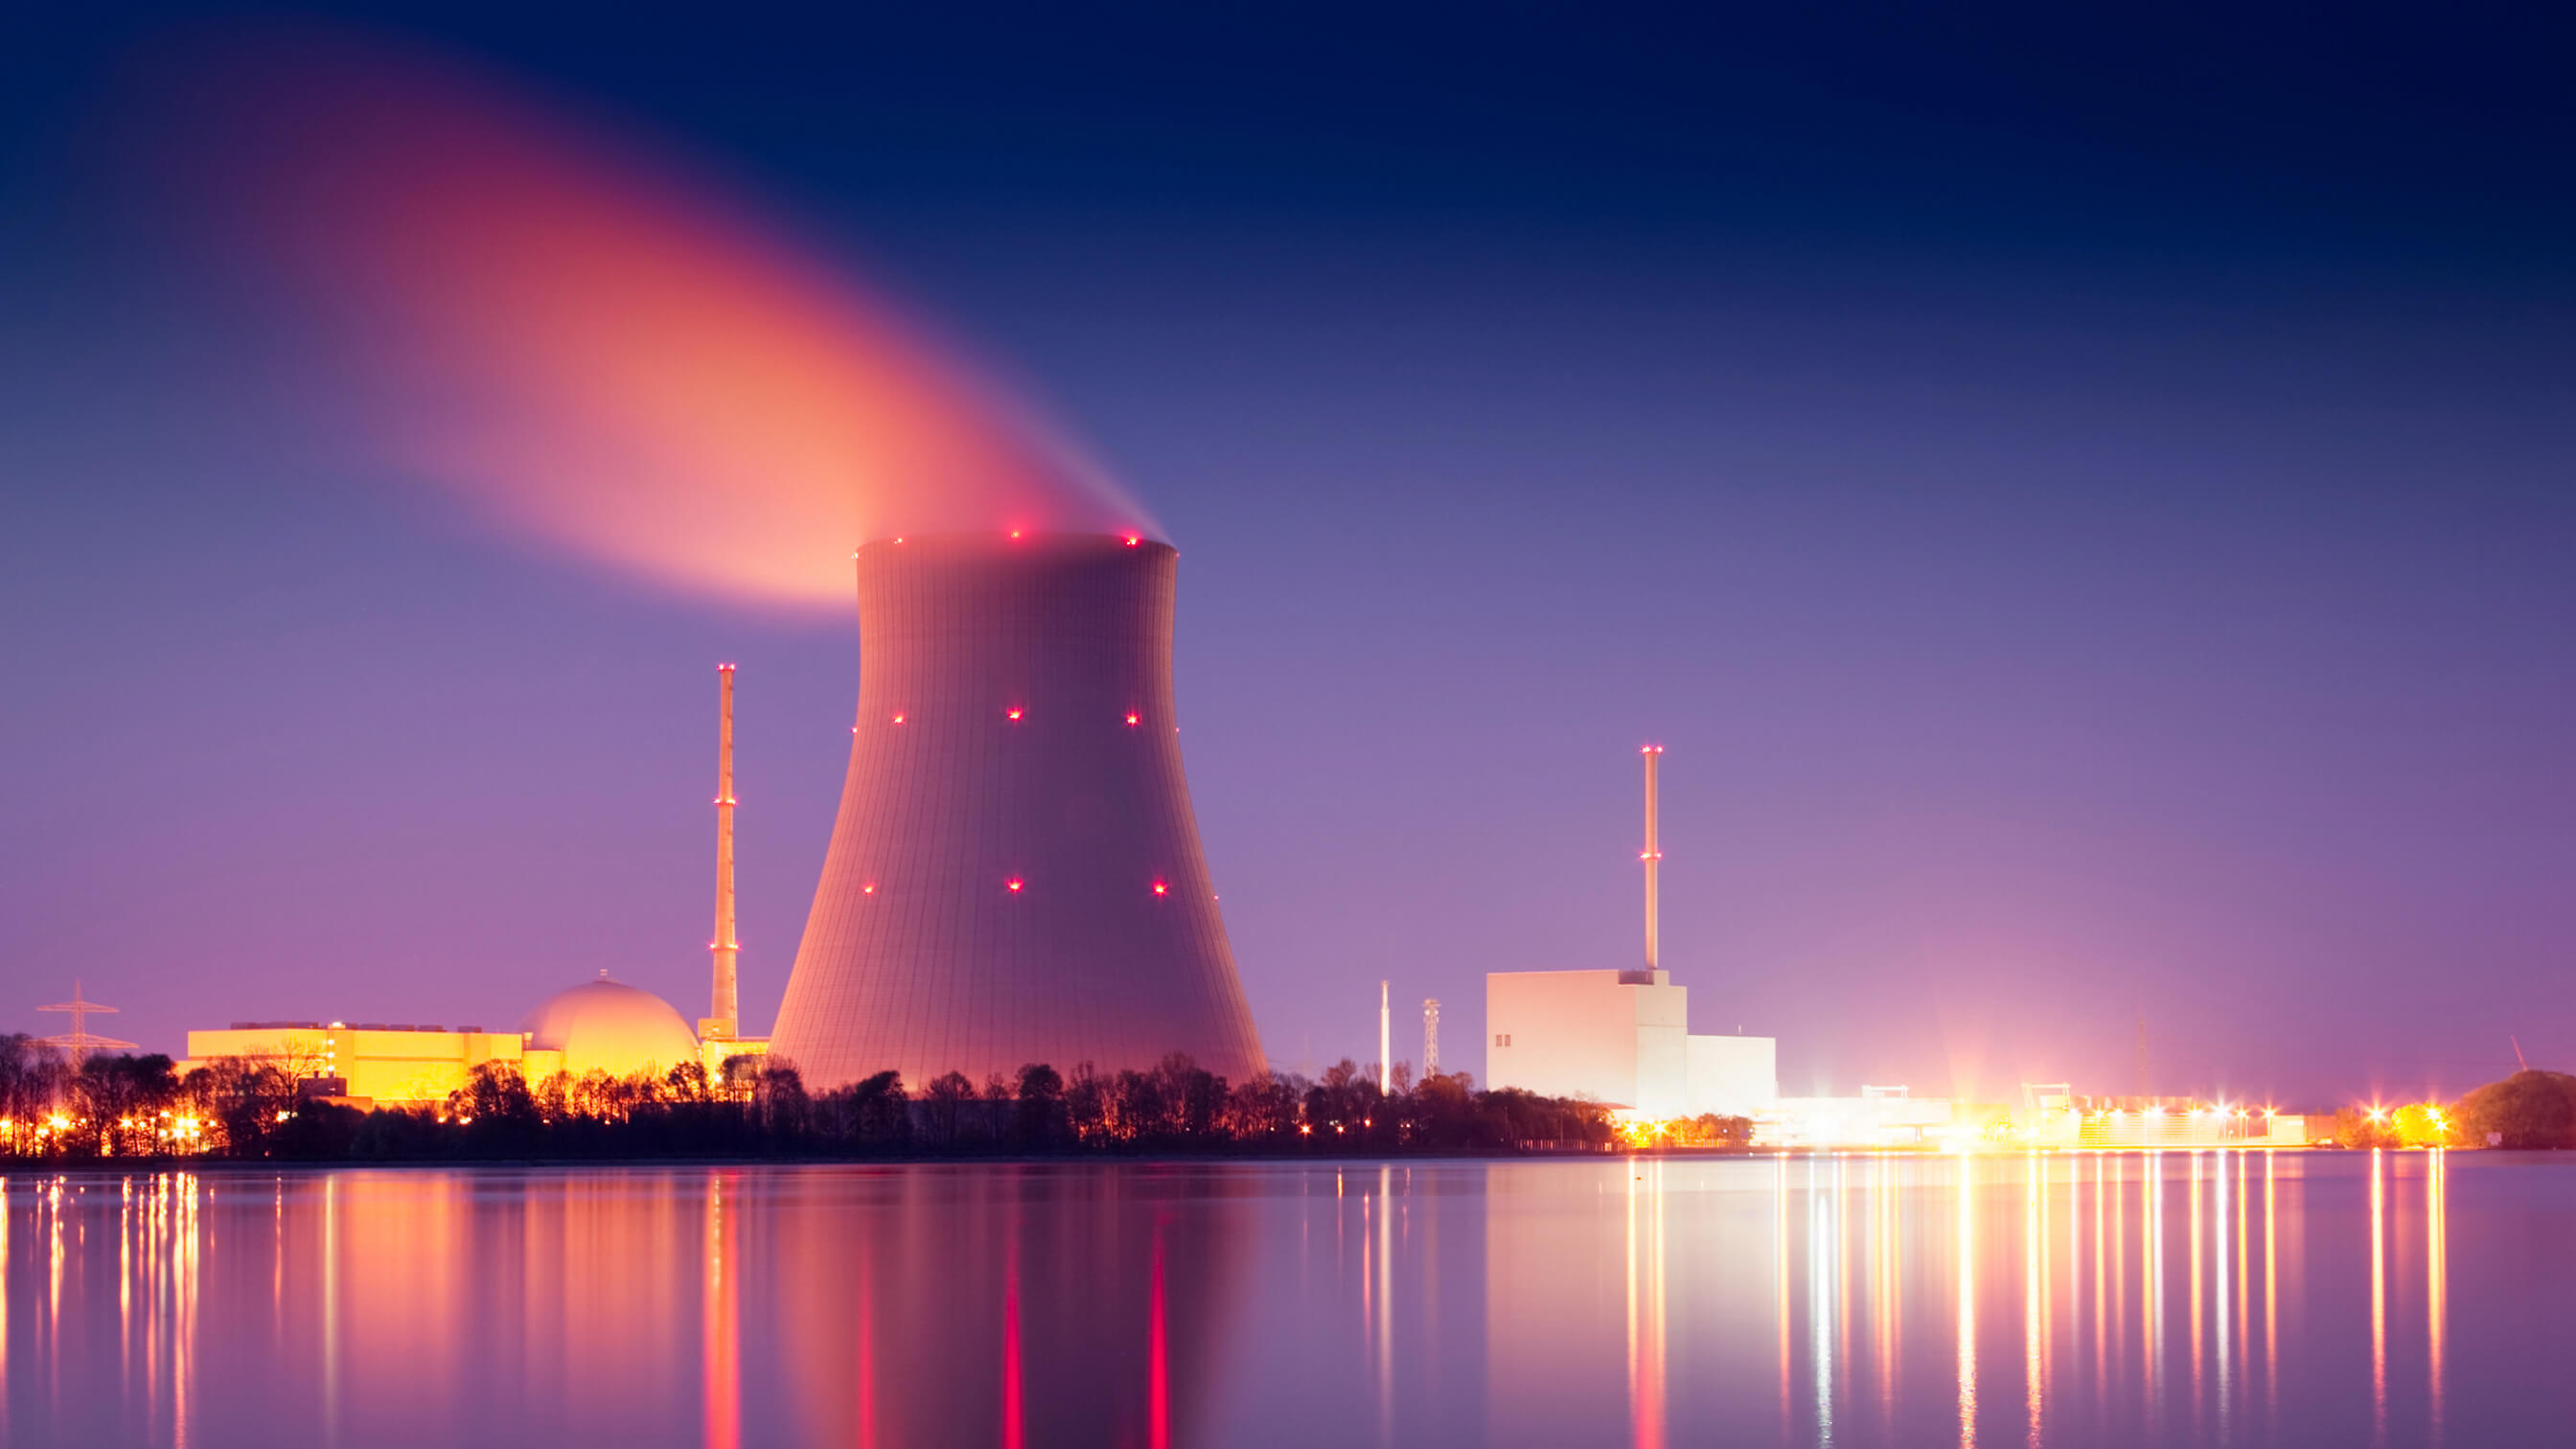 View across water to a nuclear power plant at night